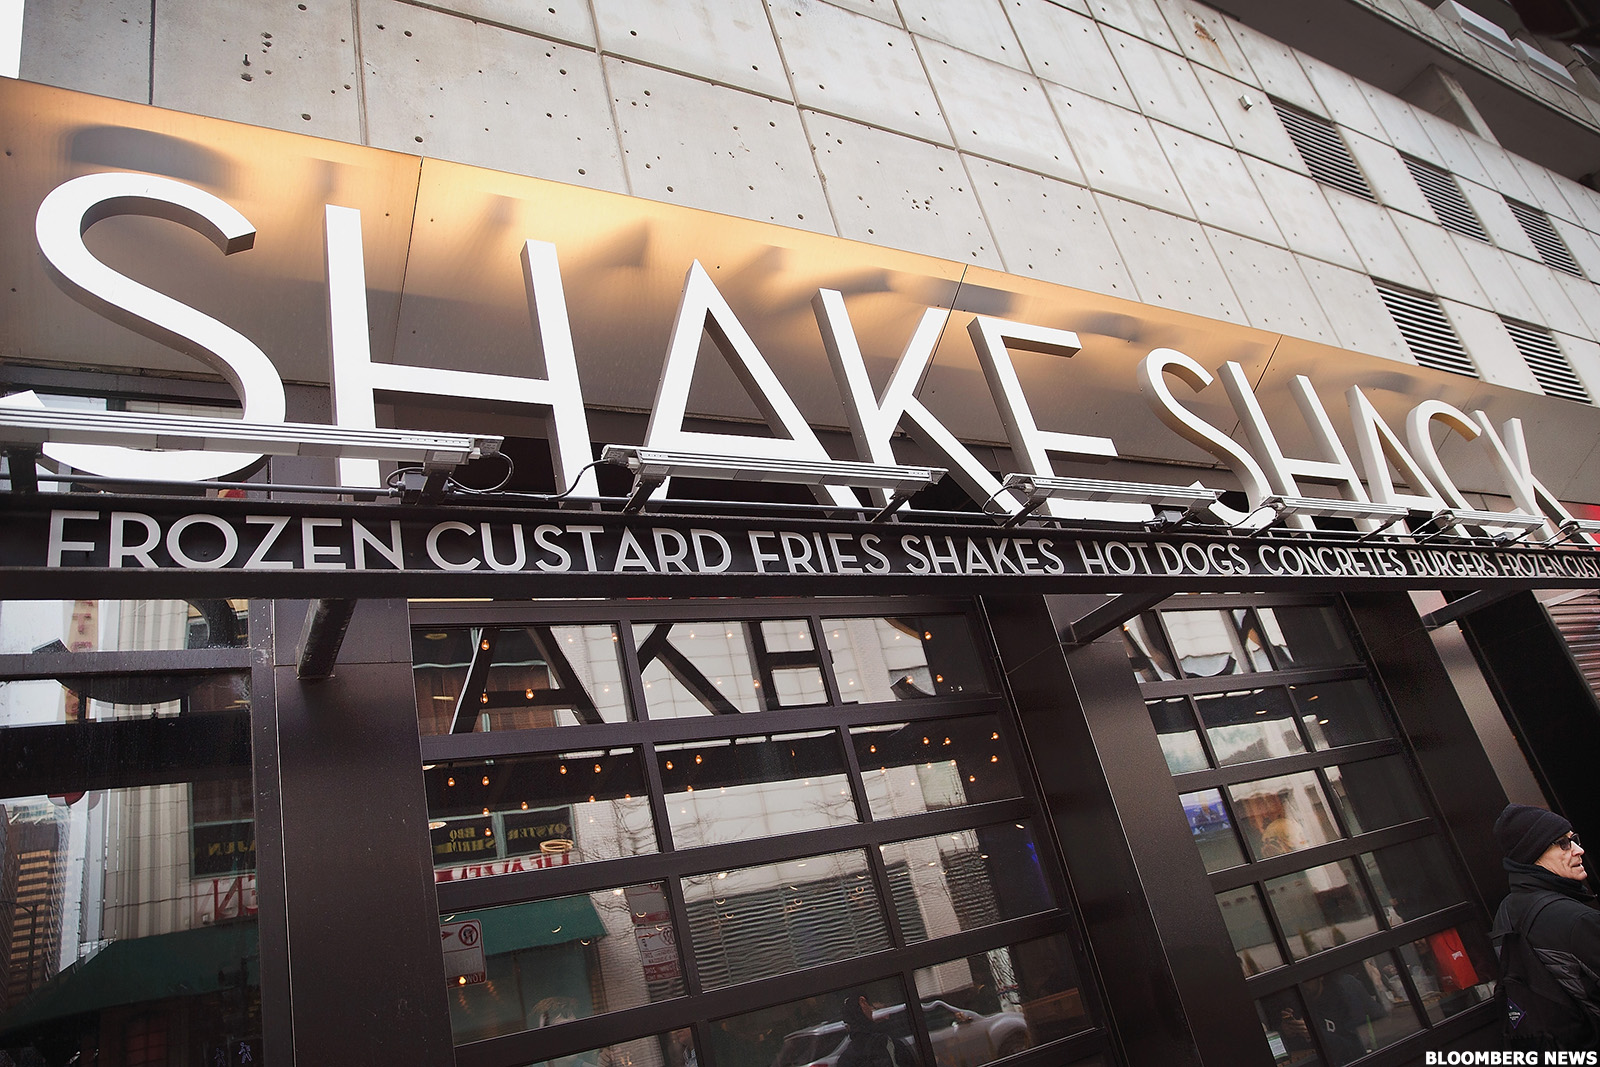 More Squawk from Jim Cramer: Shake Shack (SHAK) Earnings Call 'Not Well Received' - TheStreet